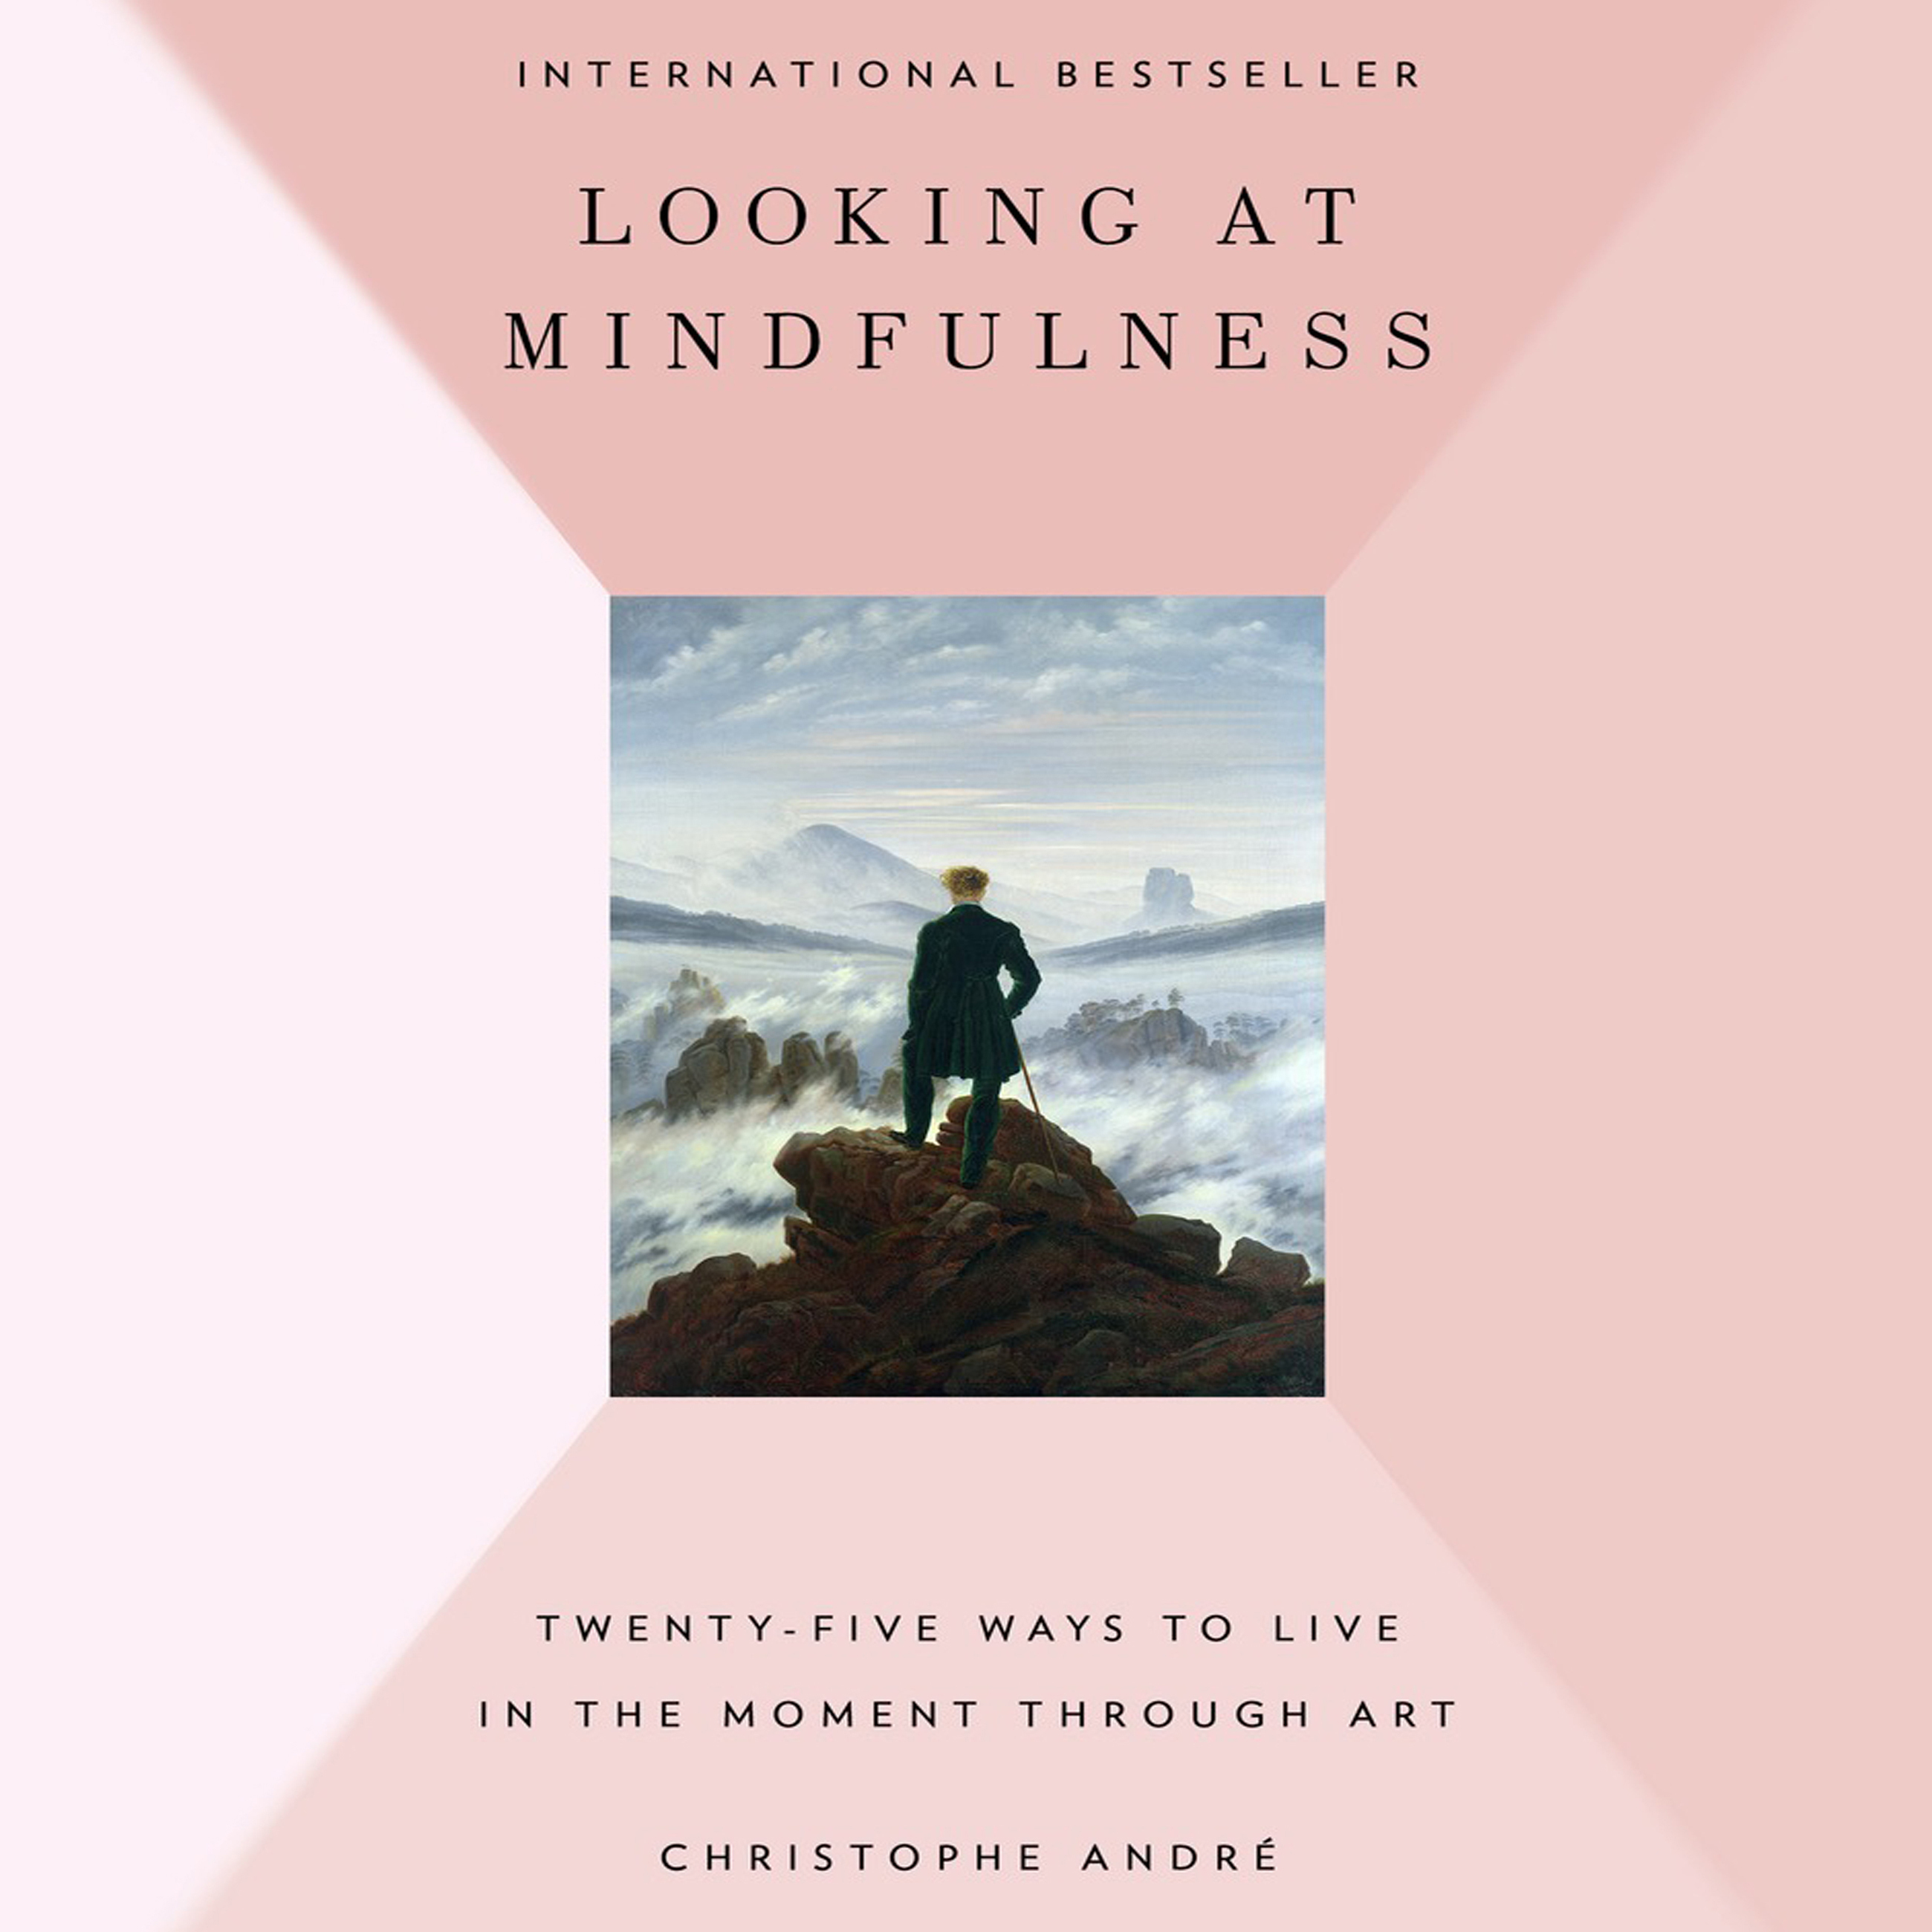 Printable Looking at Mindfulness: 25 Ways to Live in the Moment Through Art Audiobook Cover Art